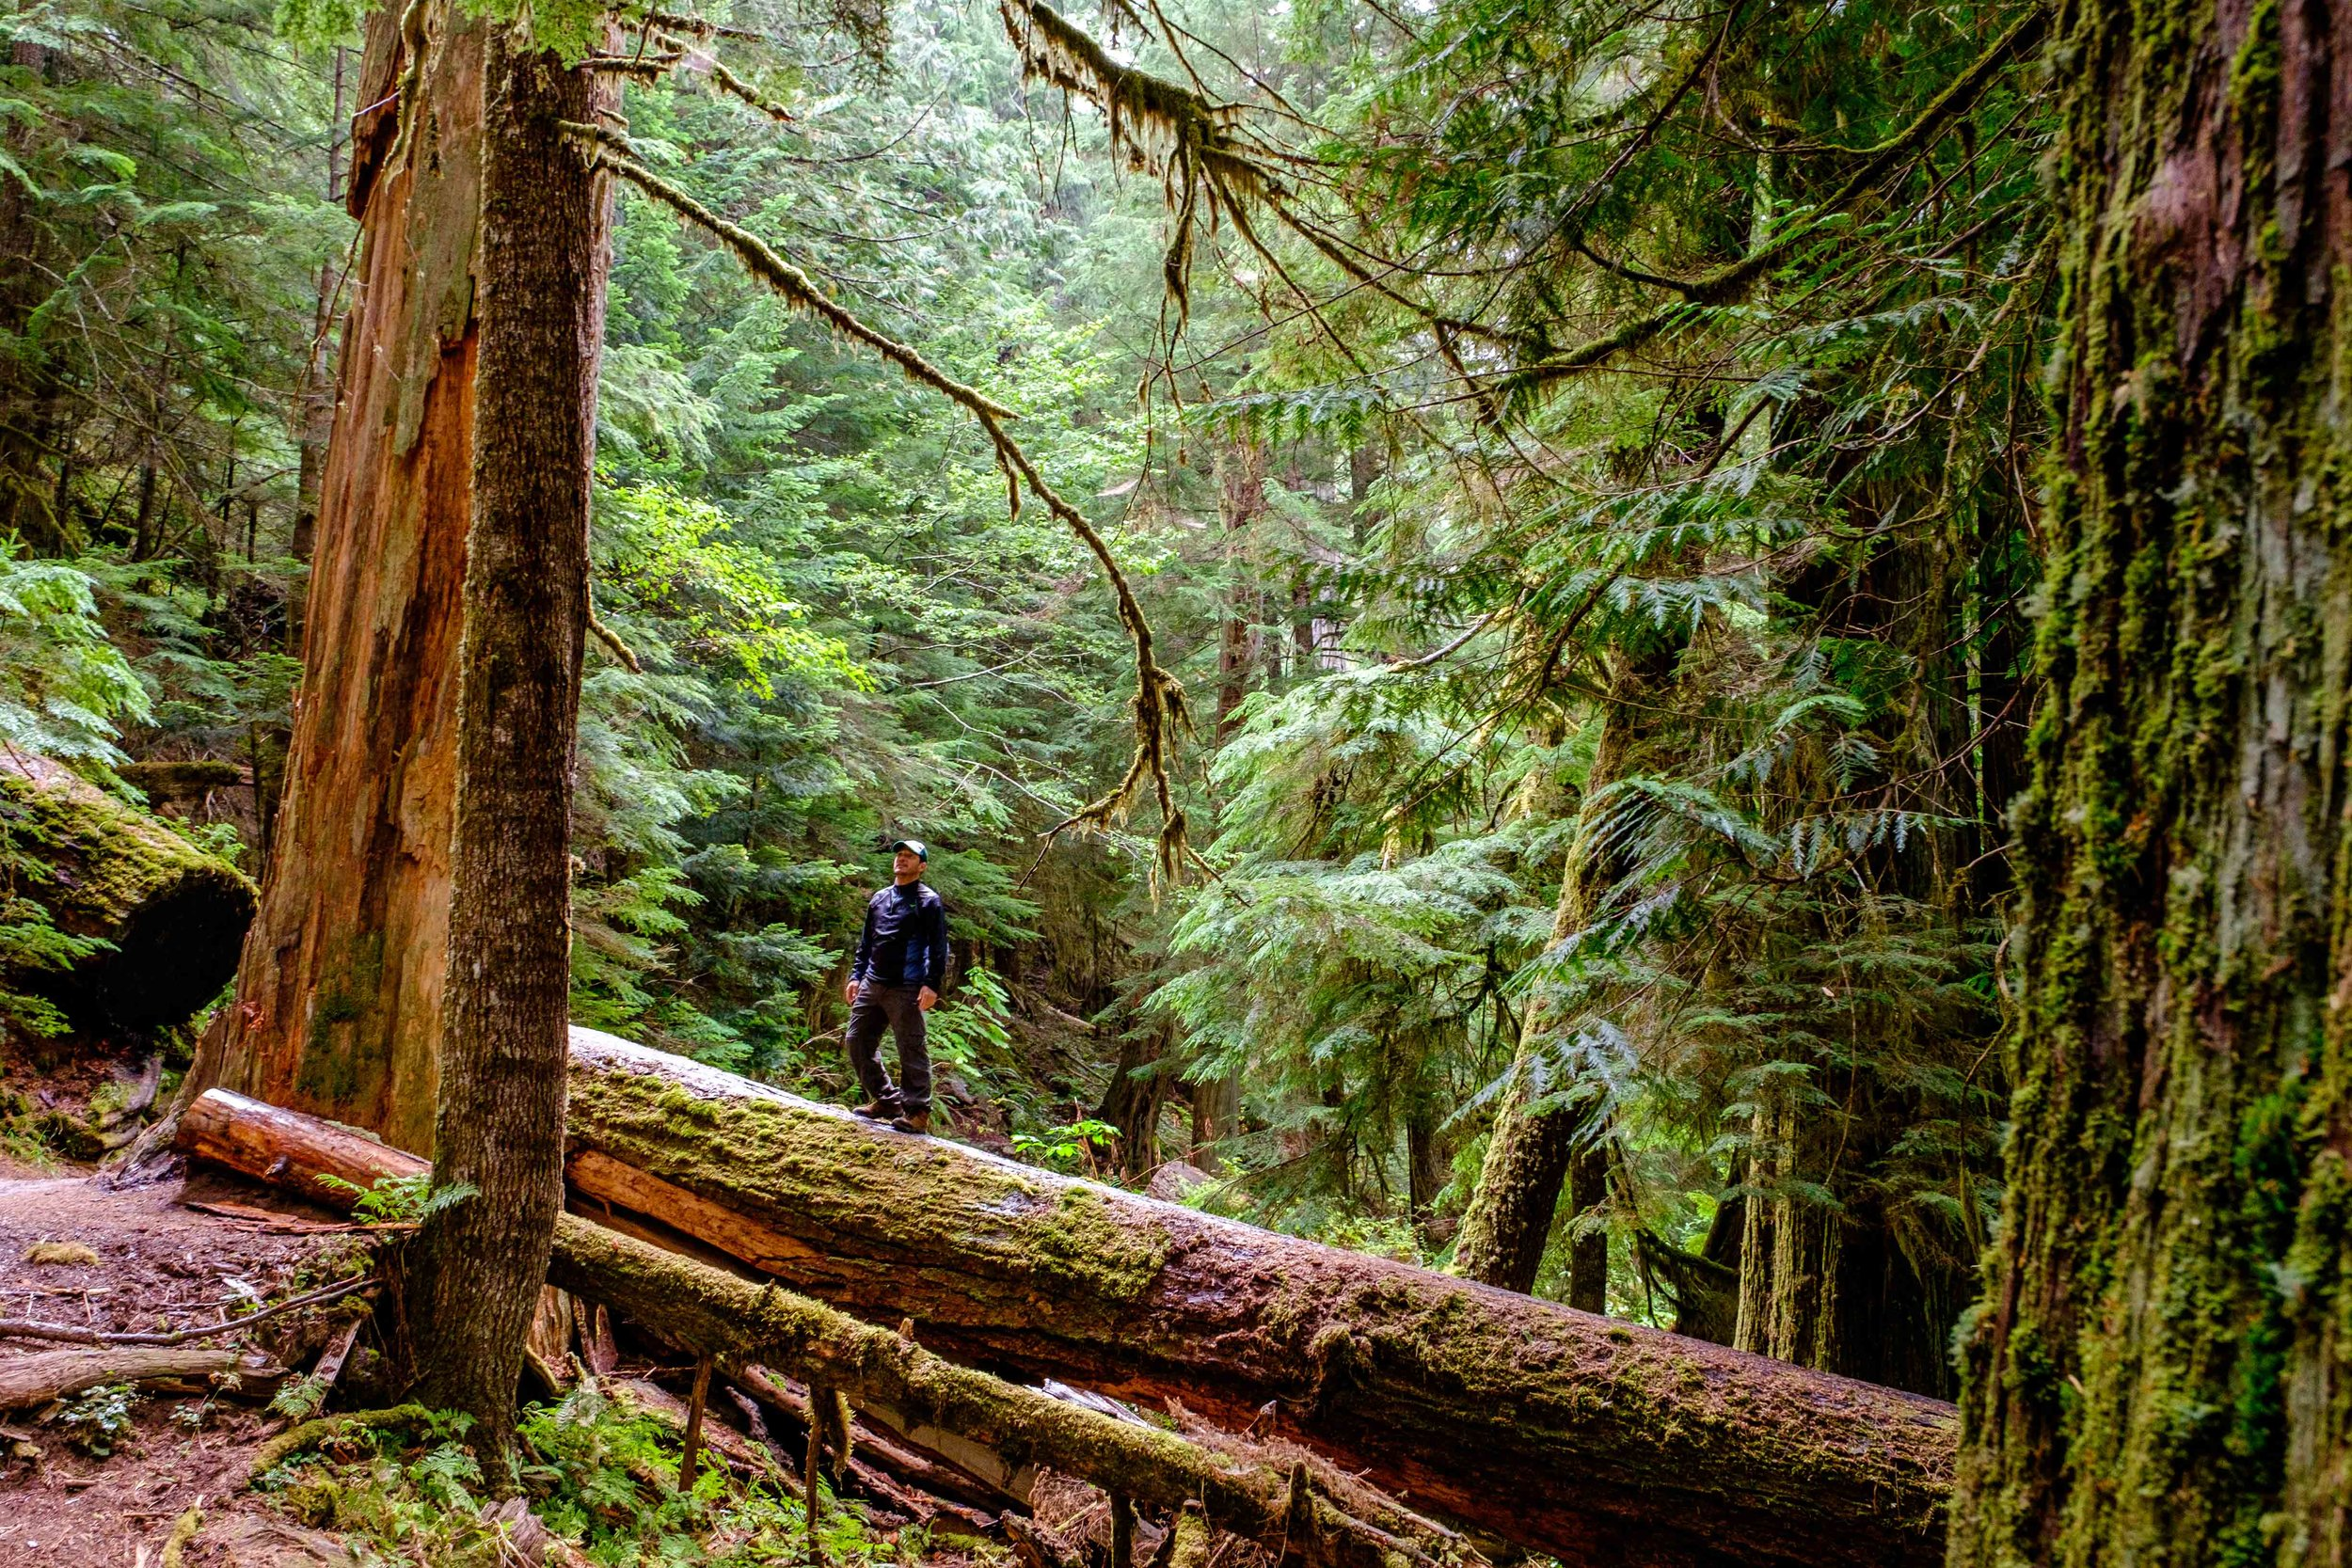 Hiking through old-growth at the Grove of the Patriarchs in Ohanapecosh.